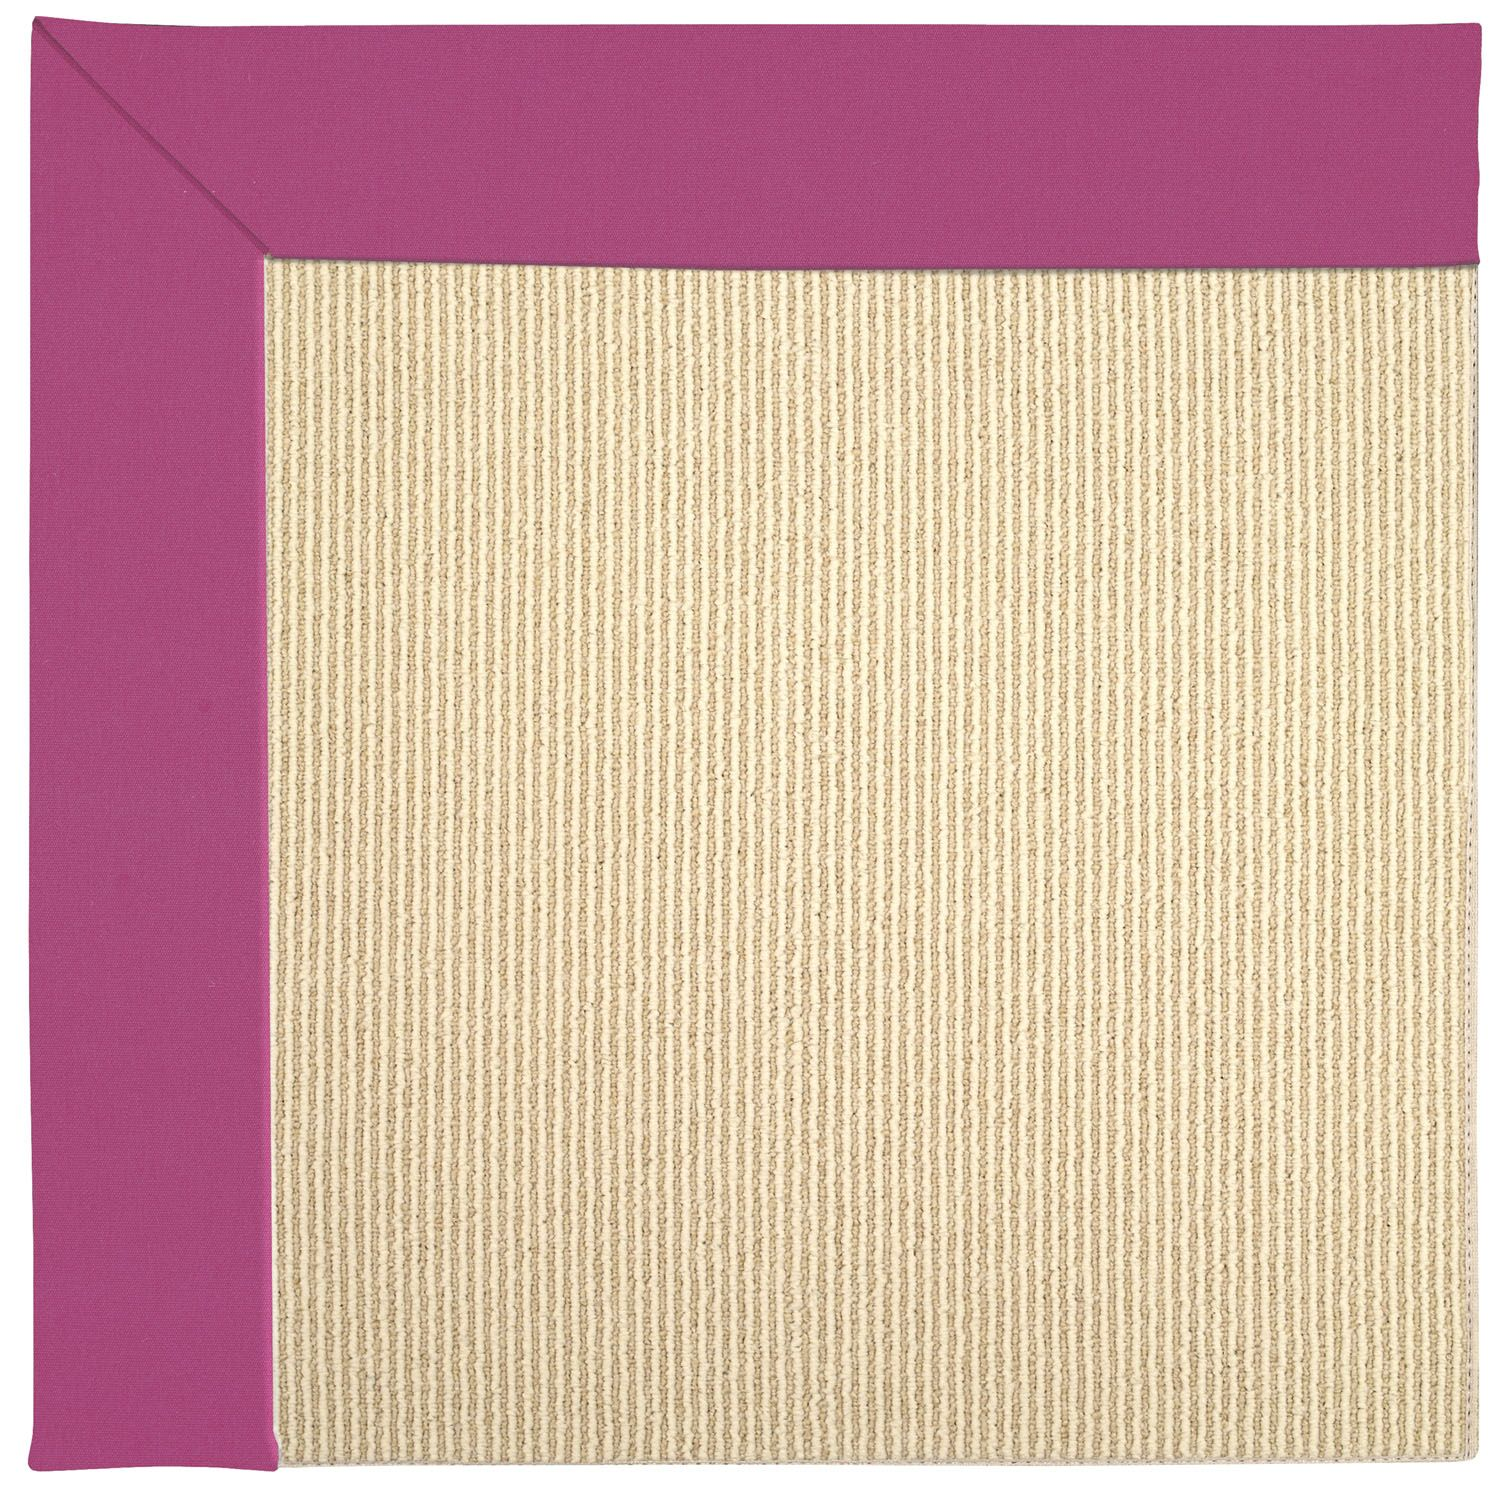 Lisle Machine Tufted Fuchsia/Brown Indoor/Outdoor Area Rug Rug Size: Square 10'